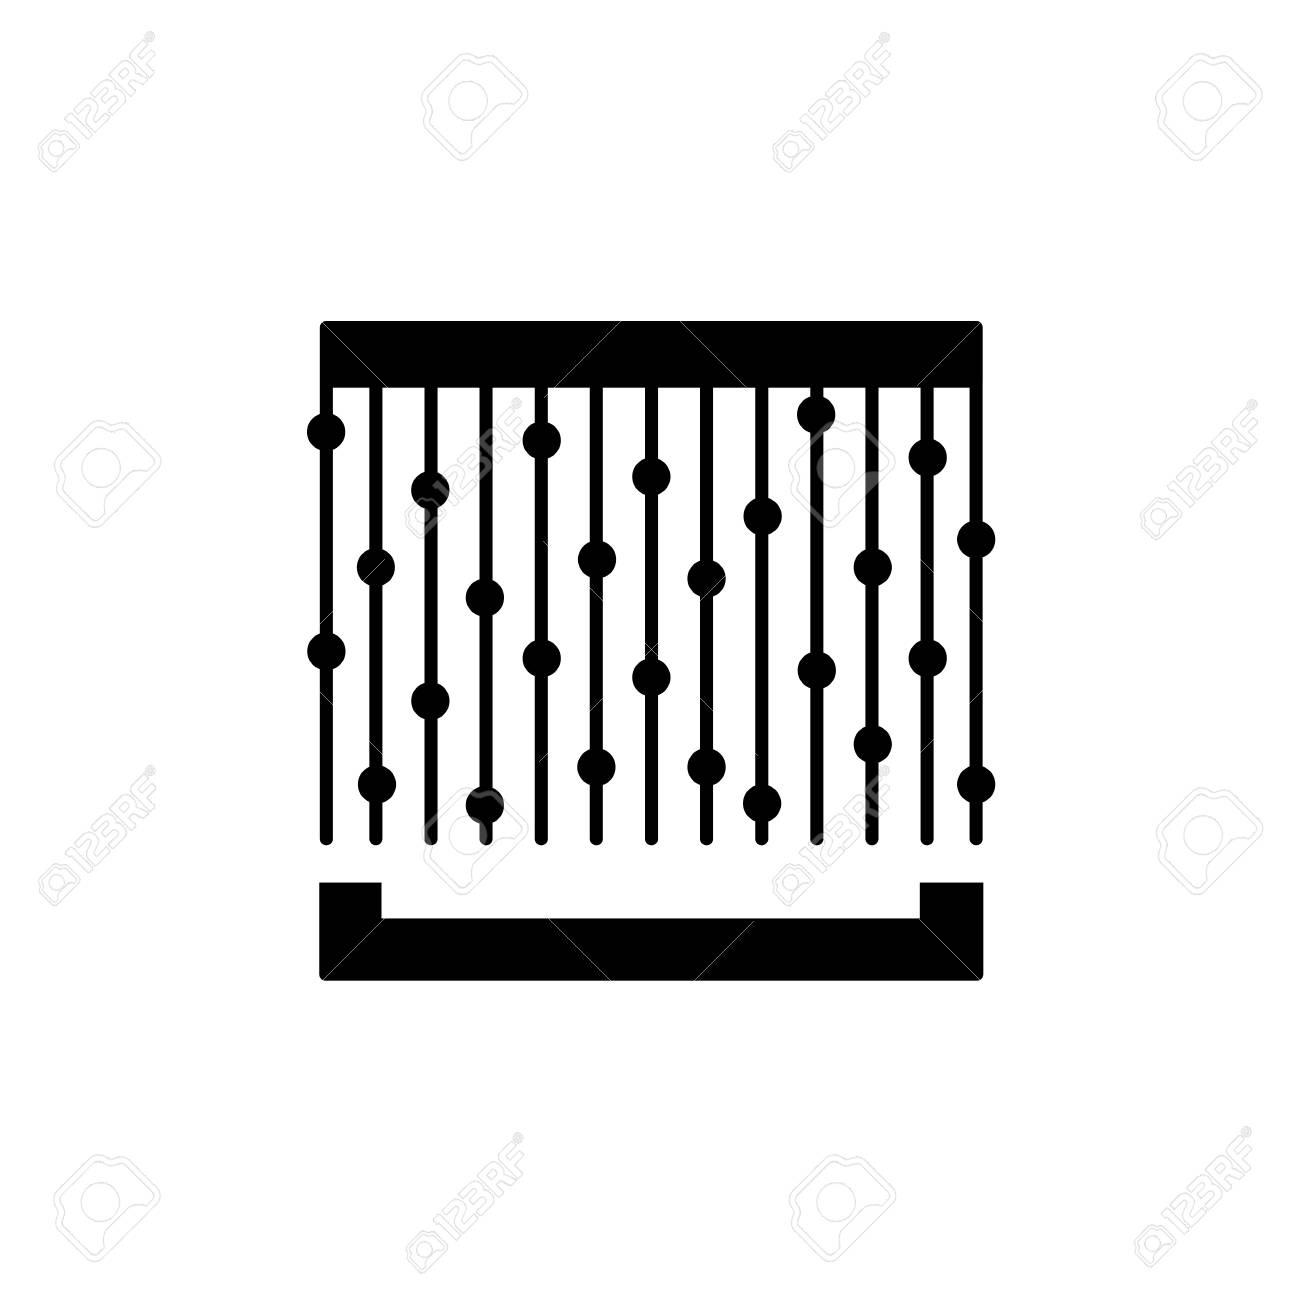 Flat icon of string window shade. Isolated object on white background - 126841633